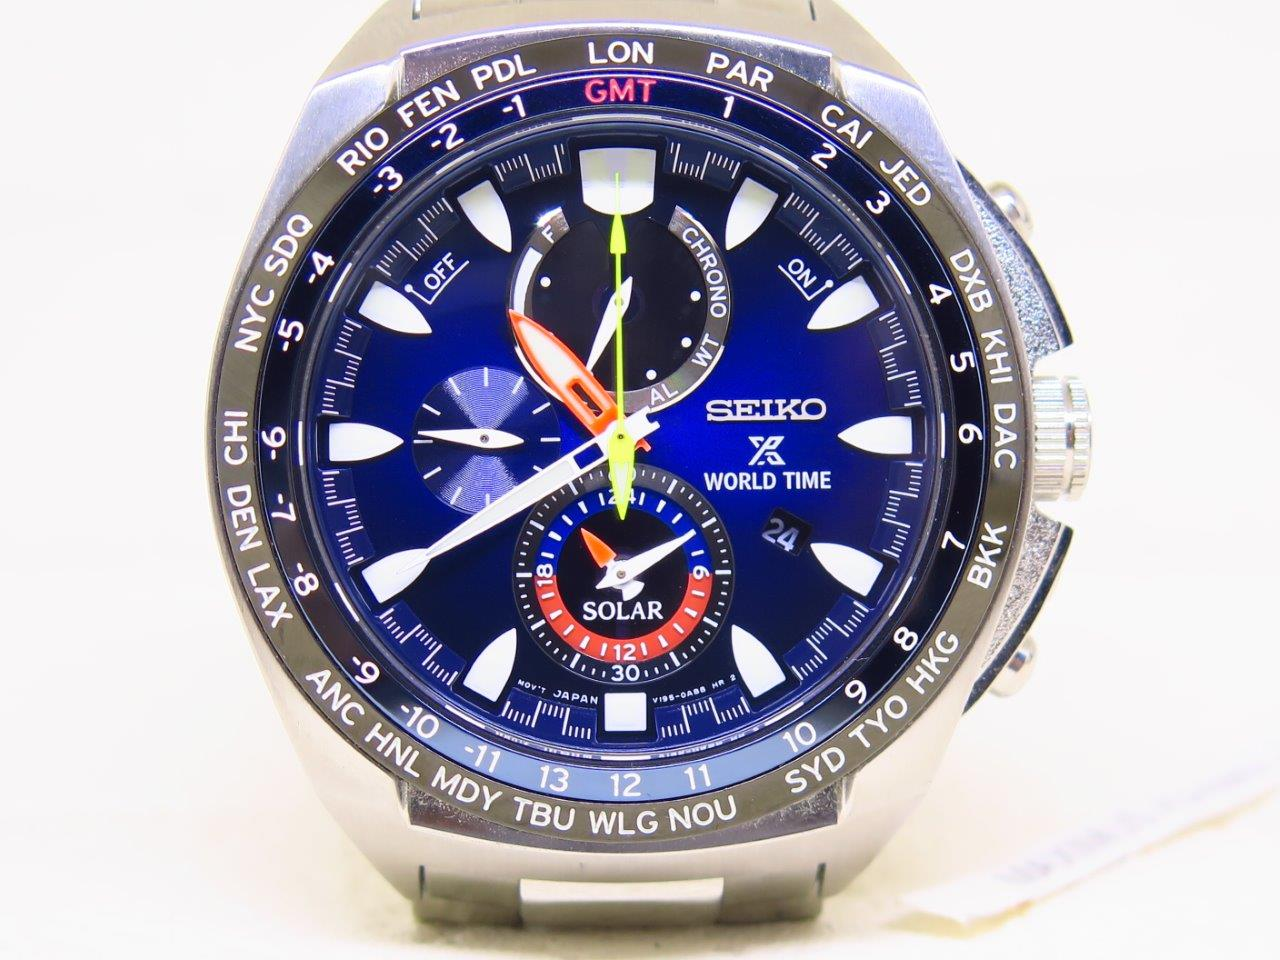 SEIKO WORLDTIME CHRONOGRAPH ALARM SUNBURST BLUE DIAL - SEIKO SSC549P1 - SOLAR MOVEMENT